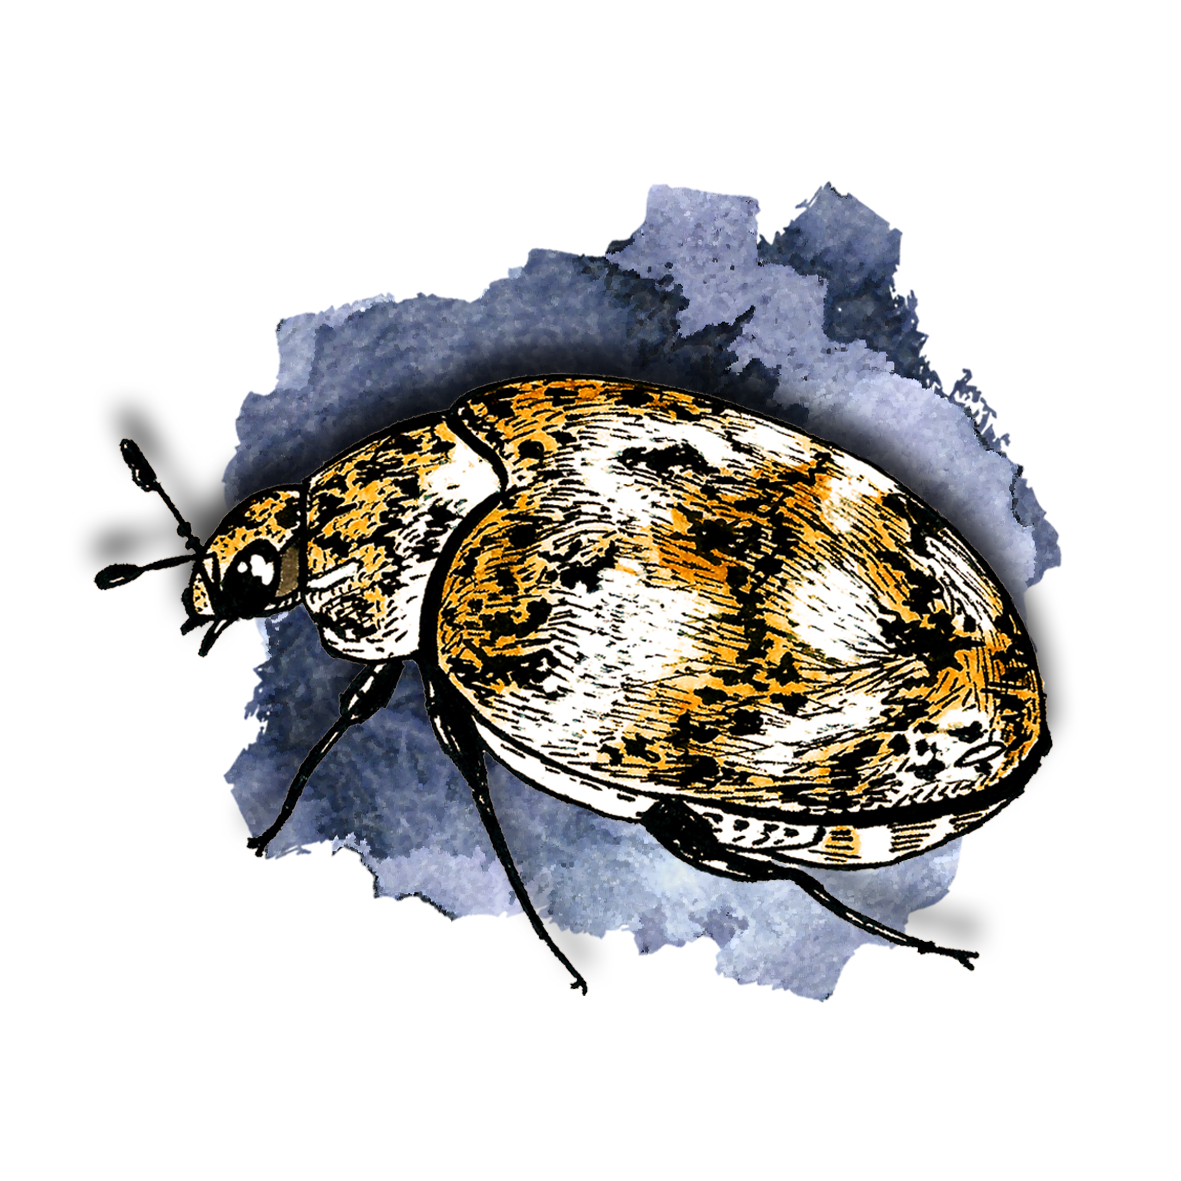 11. Carpet Beetle